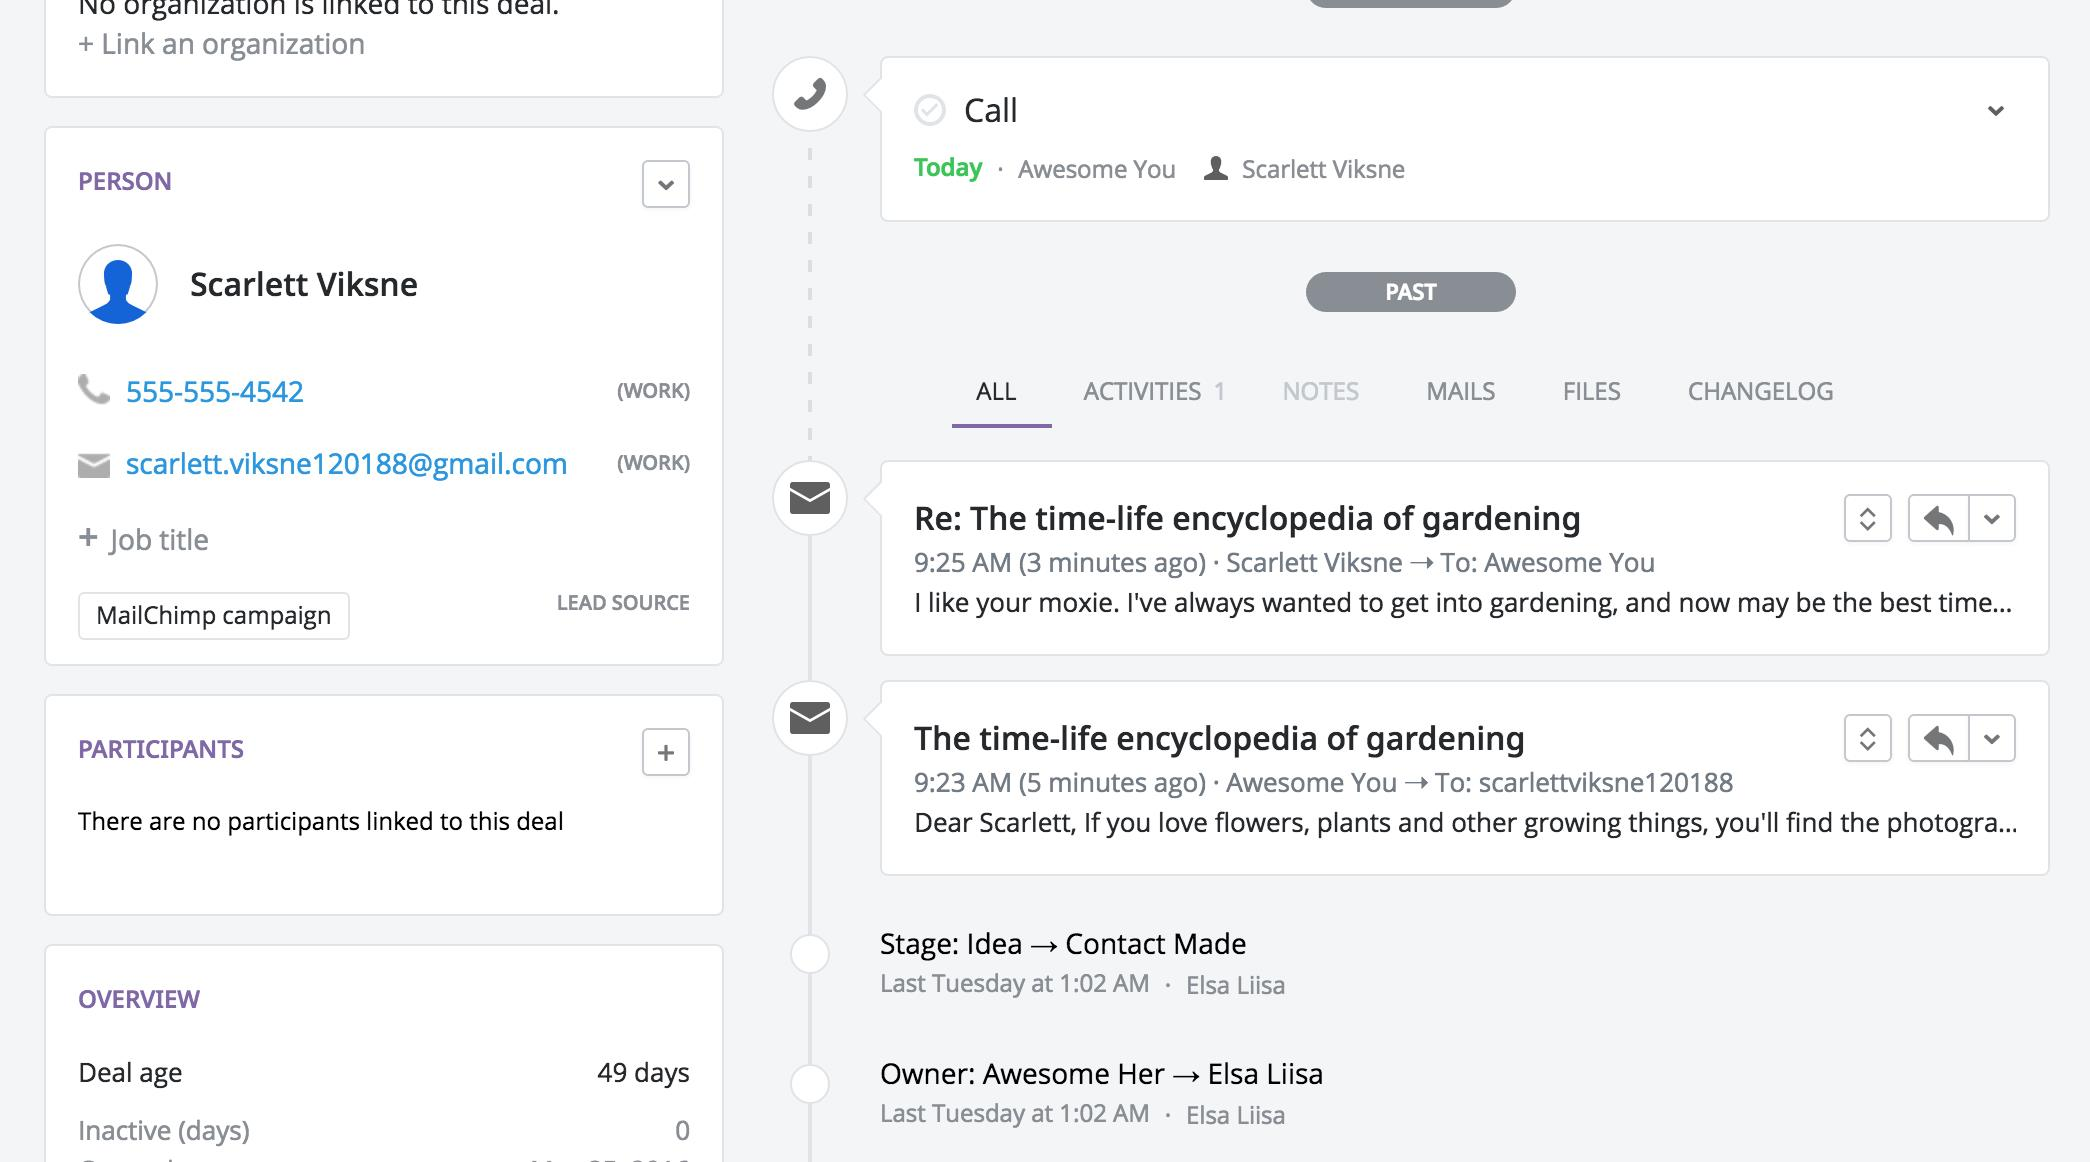 Pipedrive email sync and activity tracking